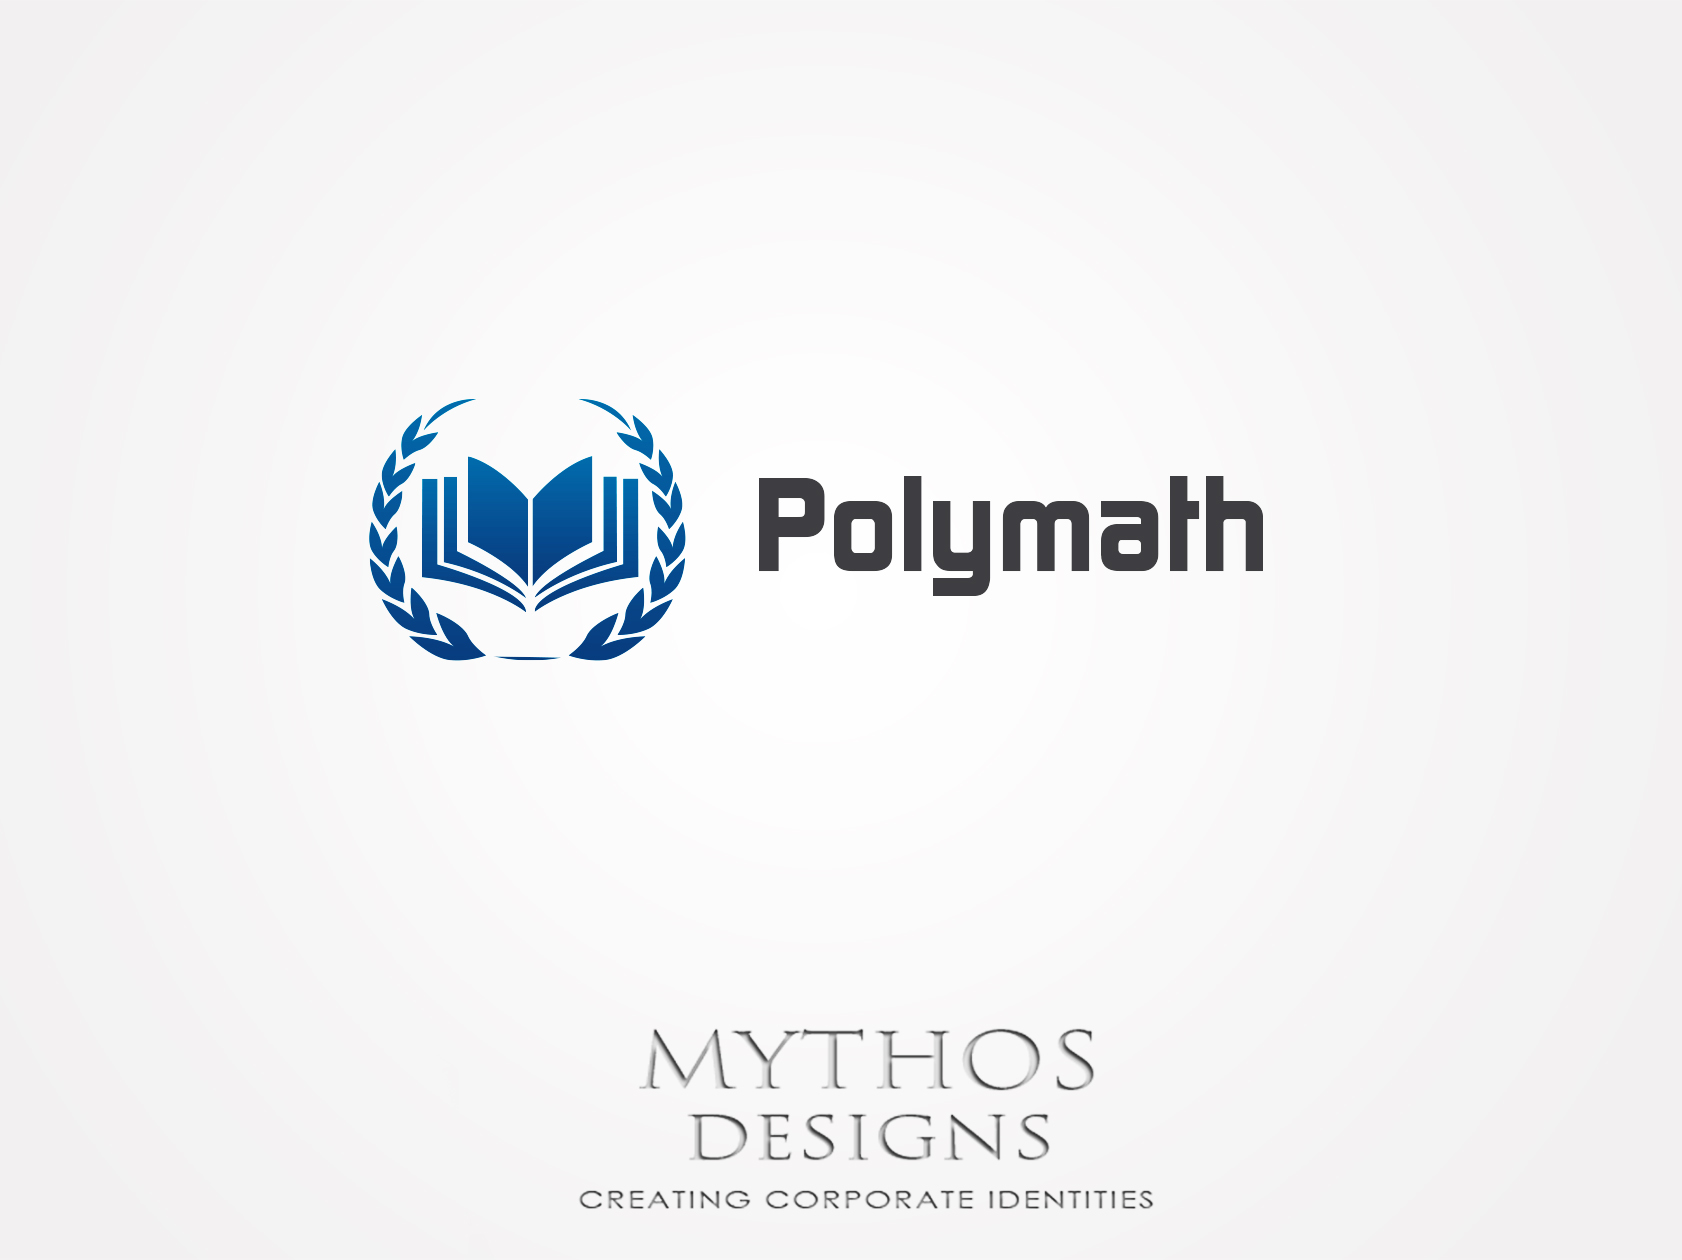 Logo Design by Mythos Designs - Entry No. 32 in the Logo Design Contest Imaginative Logo Design for Polymath.